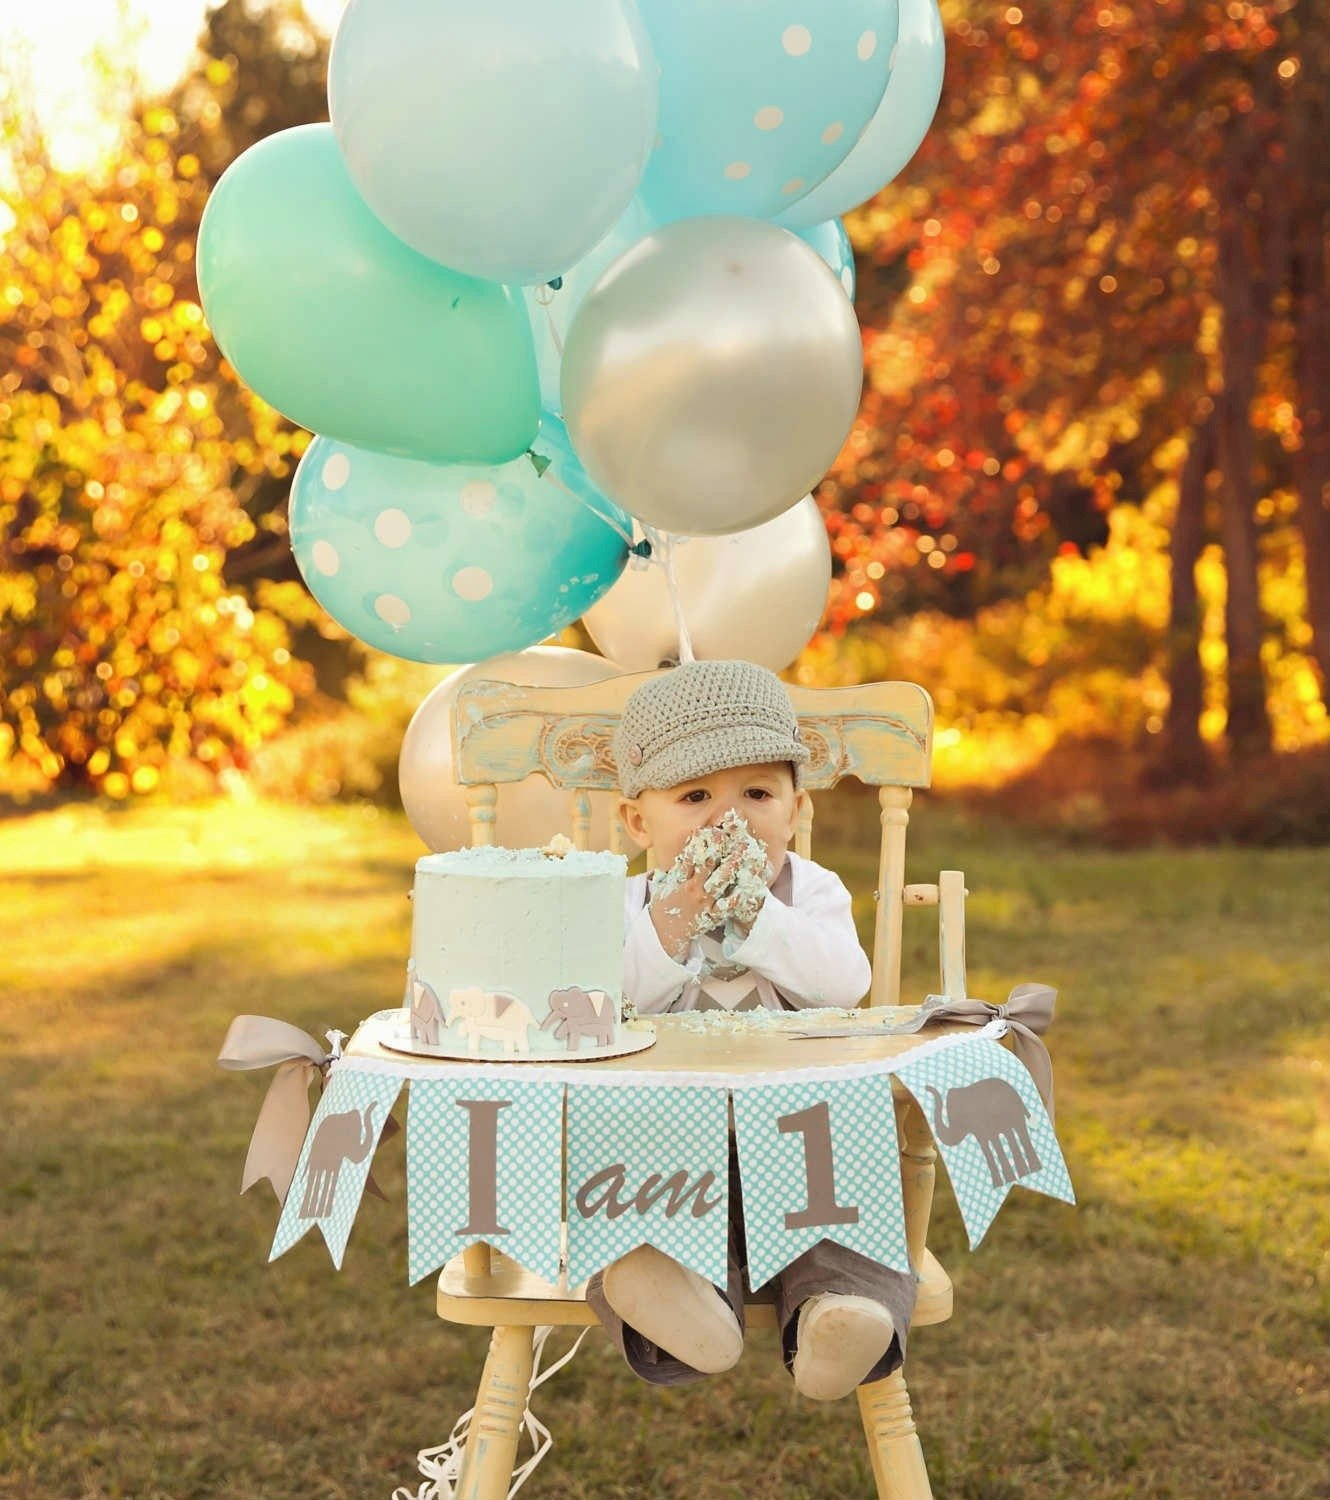 10 Fabulous Baby Boy First Birthday Party Ideas 22 cute wallpaper with regards to baby boy first birthday ideas that 2020